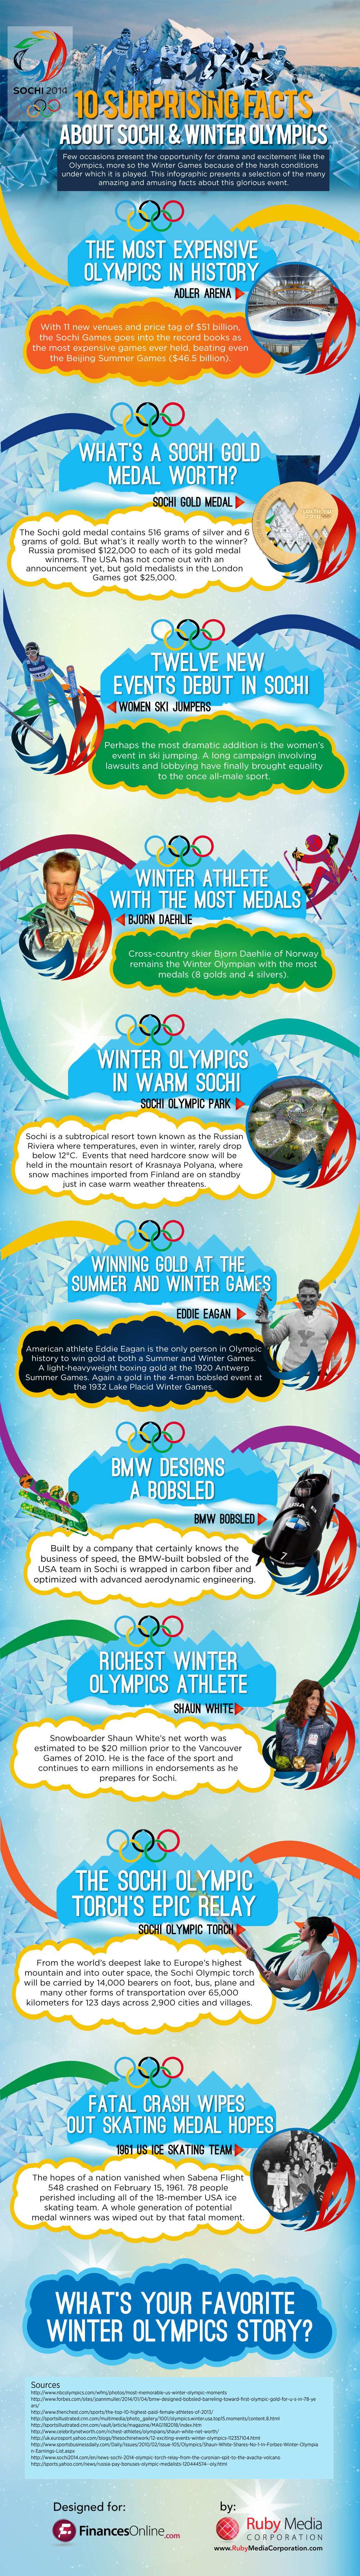 Russian Winter Olympics: 12 New Sport Events Debut in Sochi and Other Amazing Facts